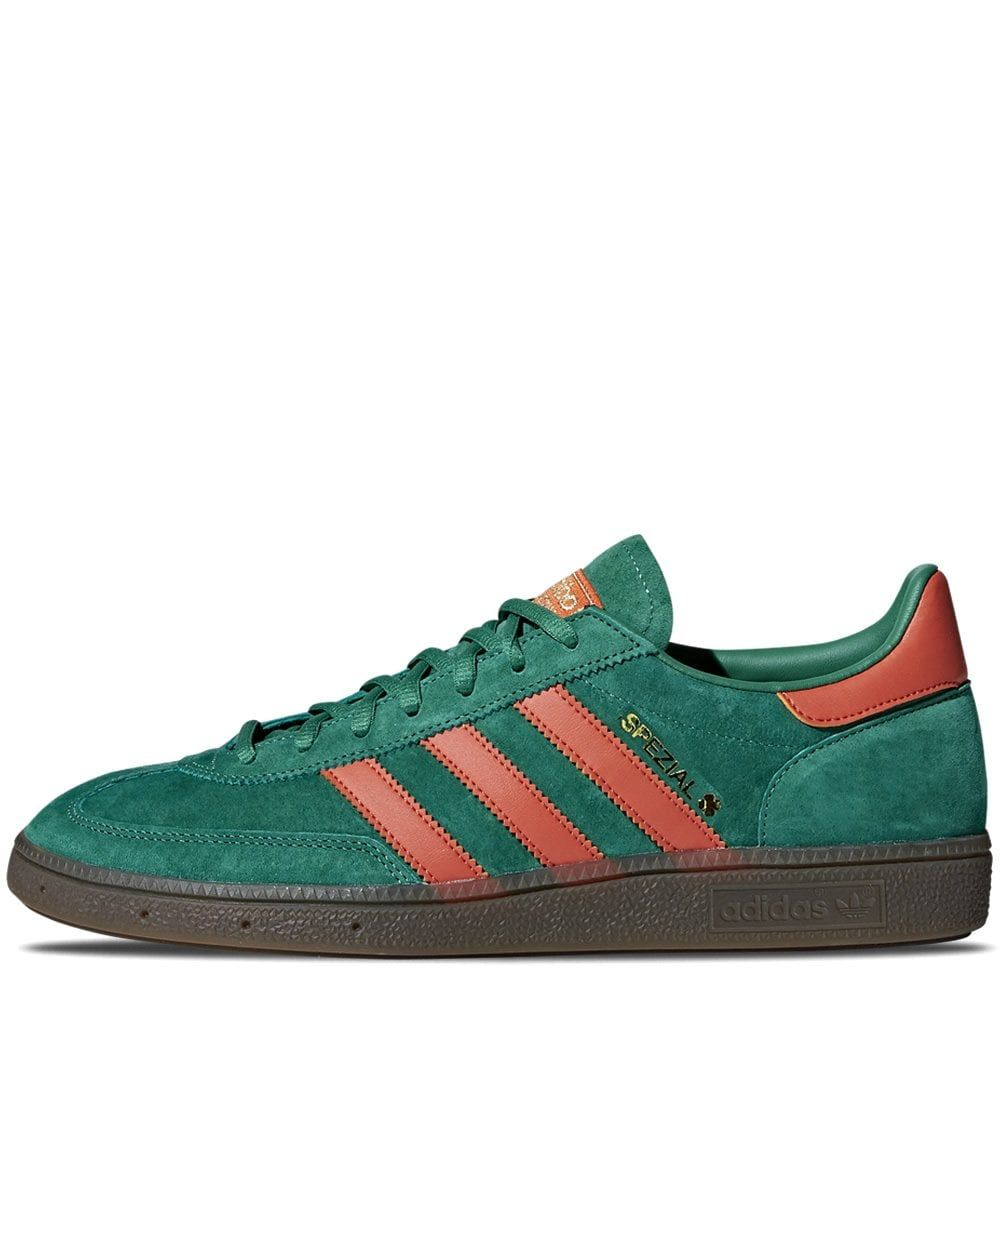 Adidas Spezial Trainers Bold Green